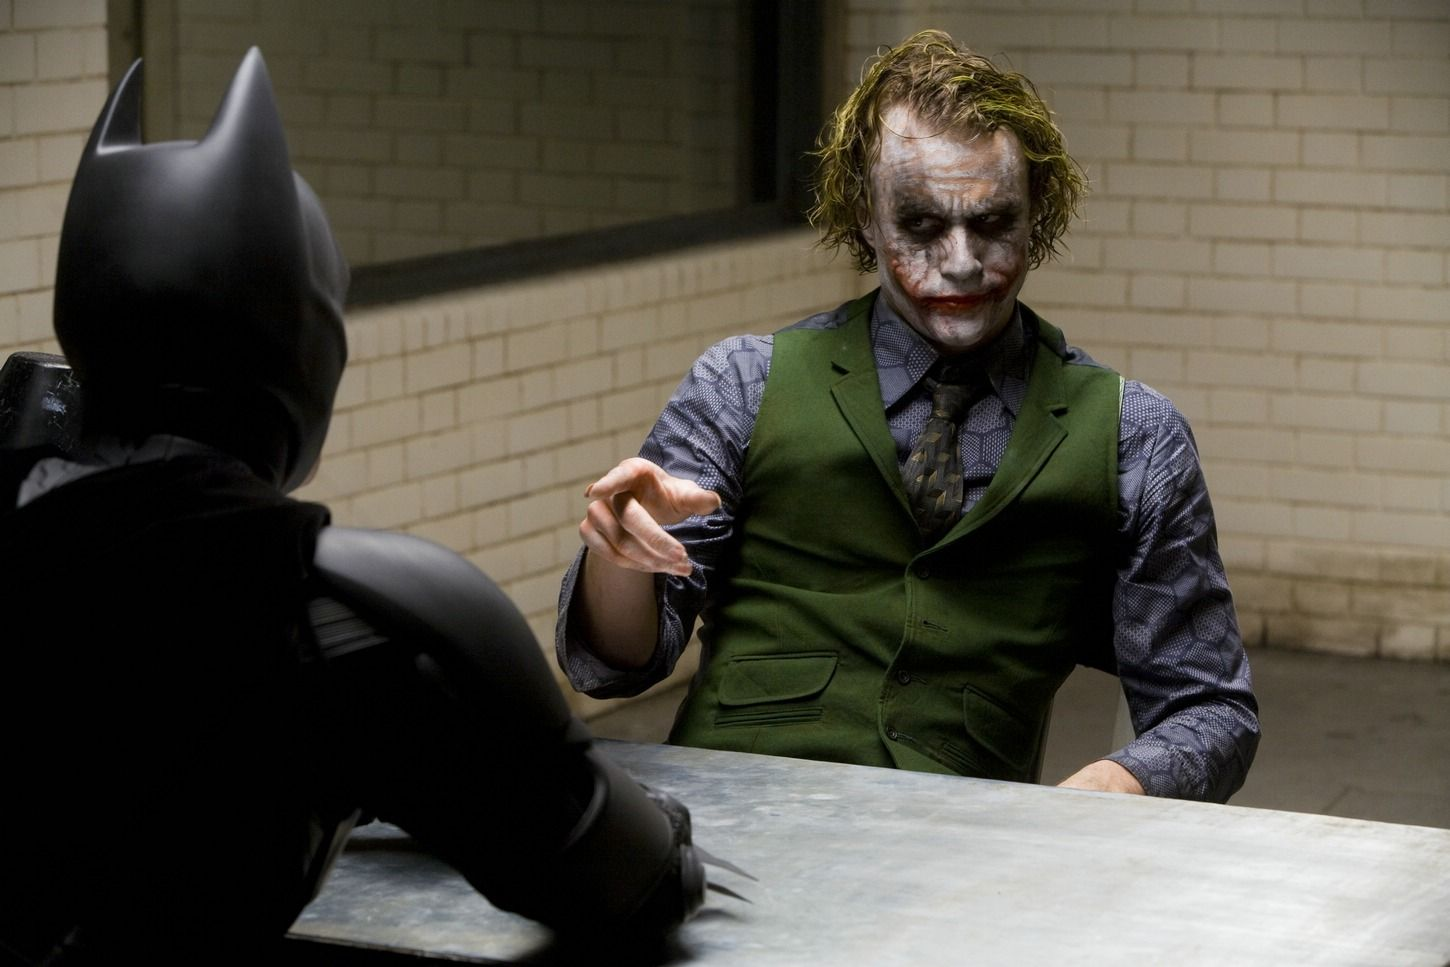 32 On Set Photos Of Christian Bale And Heath Ledger During The